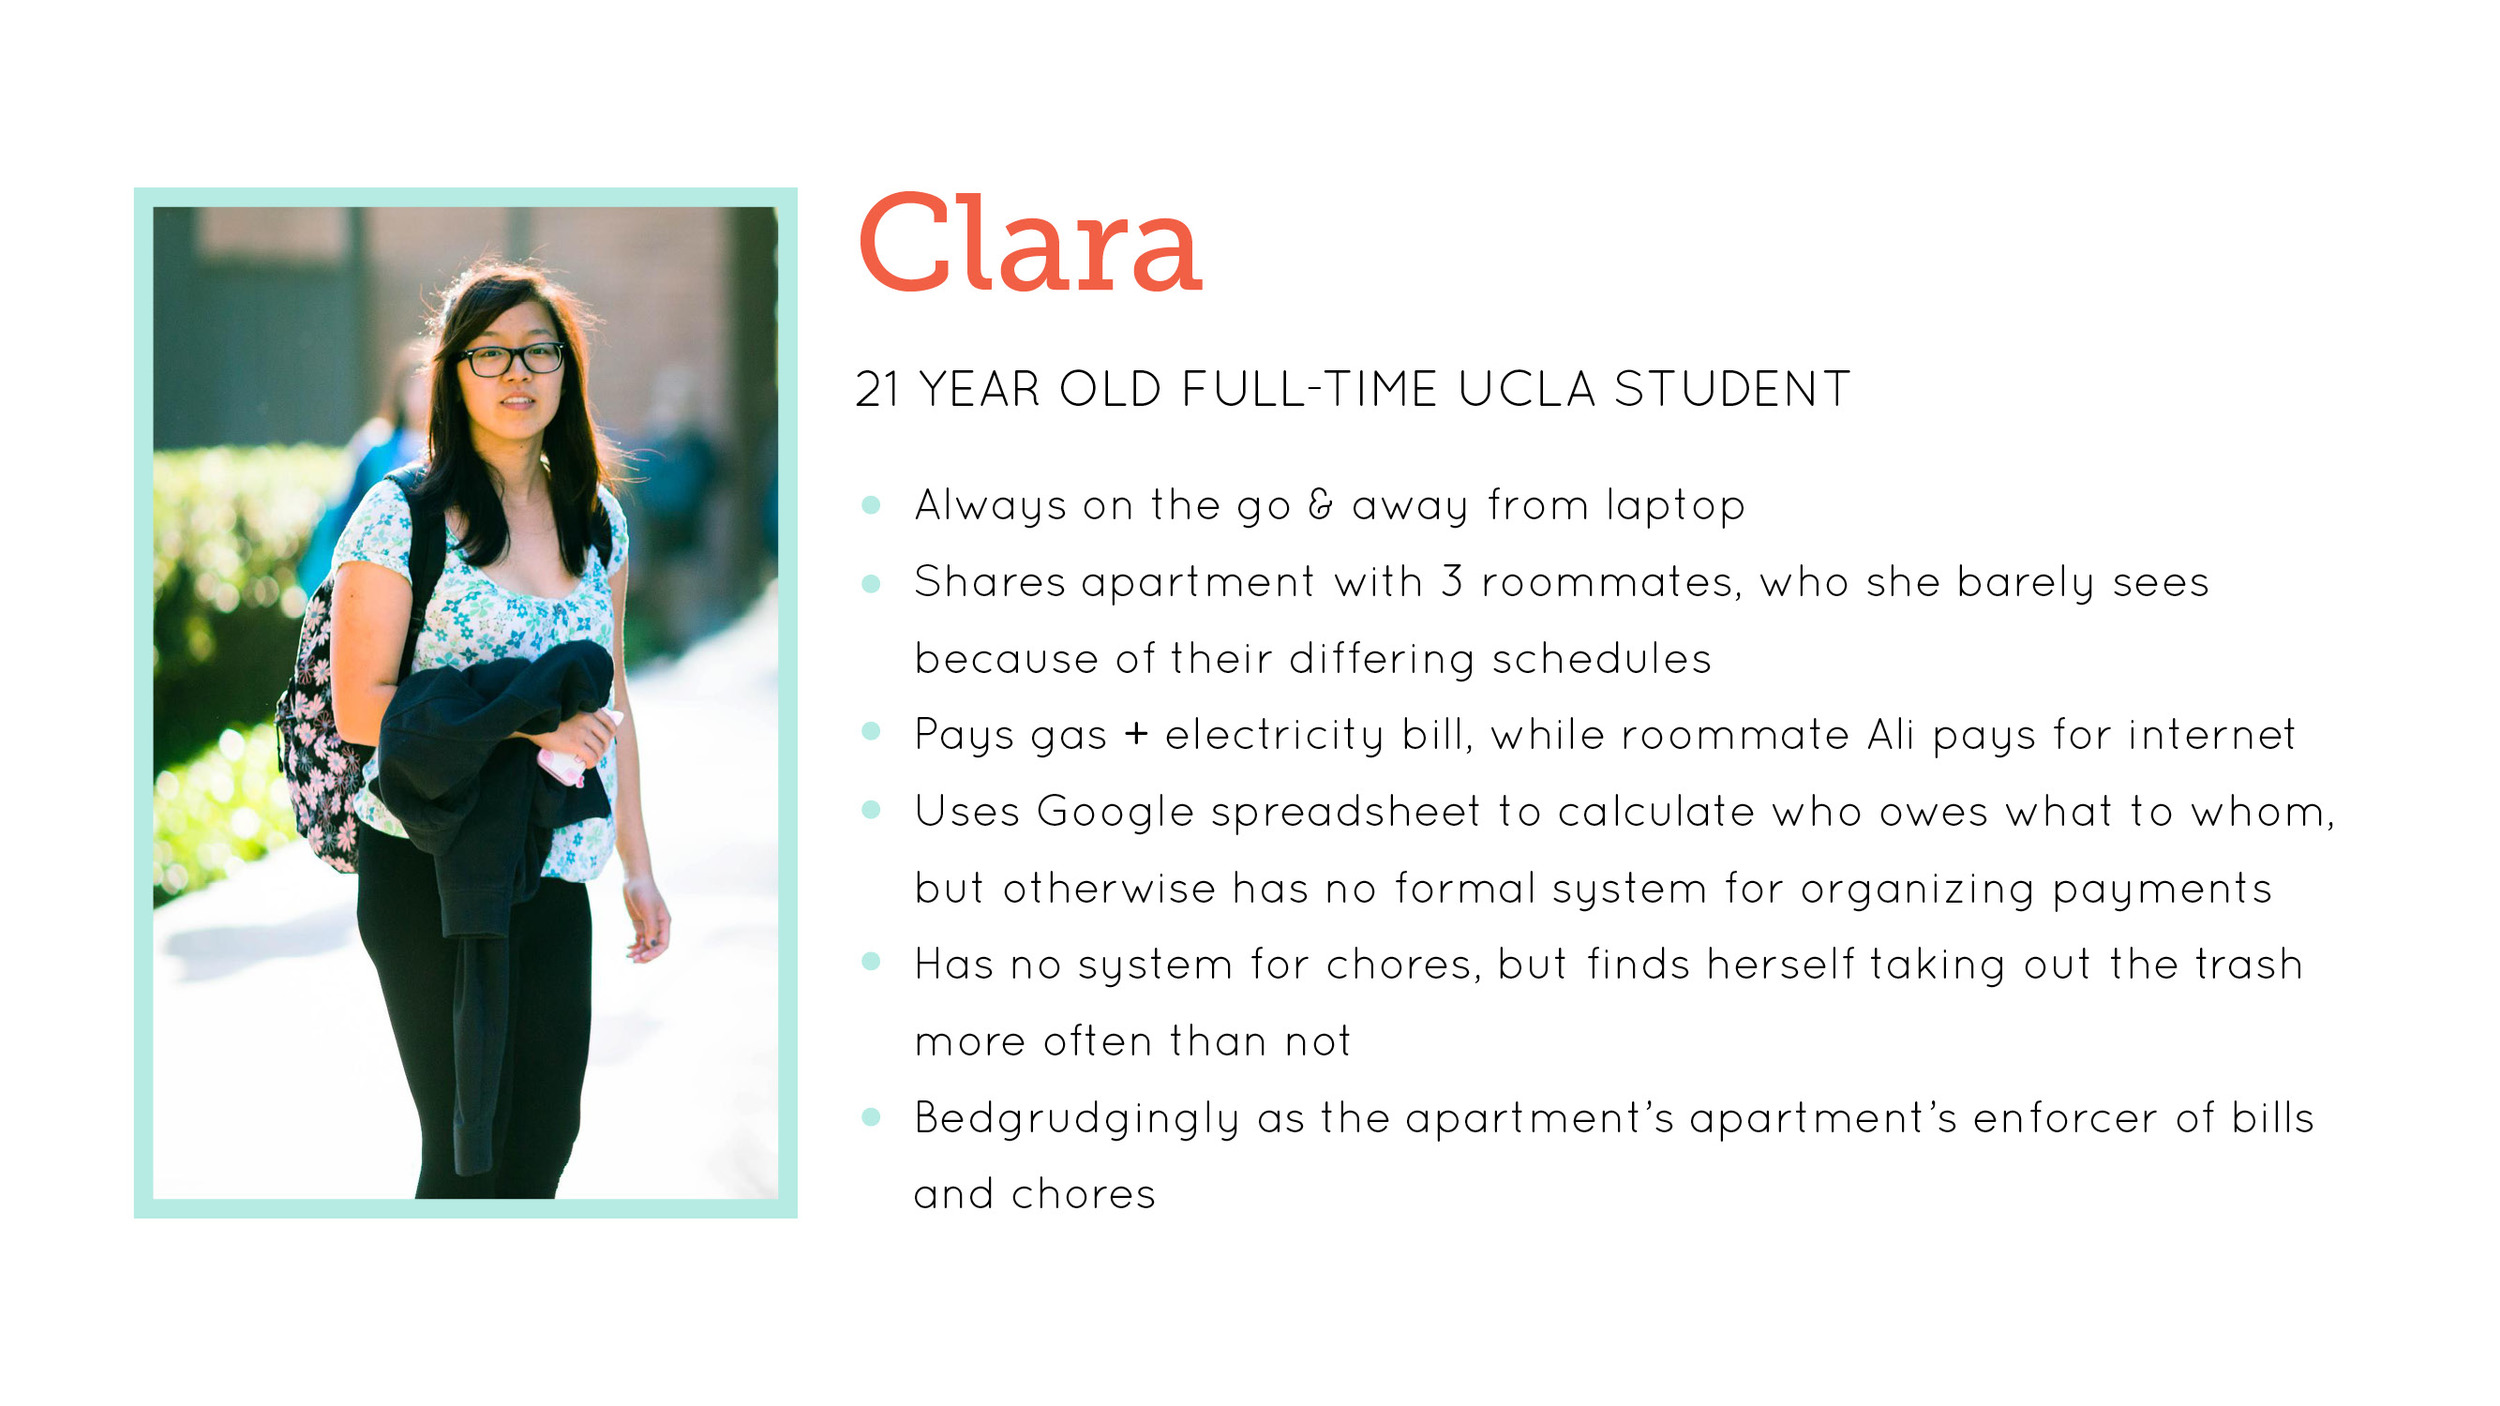 USER DESCRIPTION: Our primary user was Clara, a college student at UCLA who shared an apartment with 3 other students.